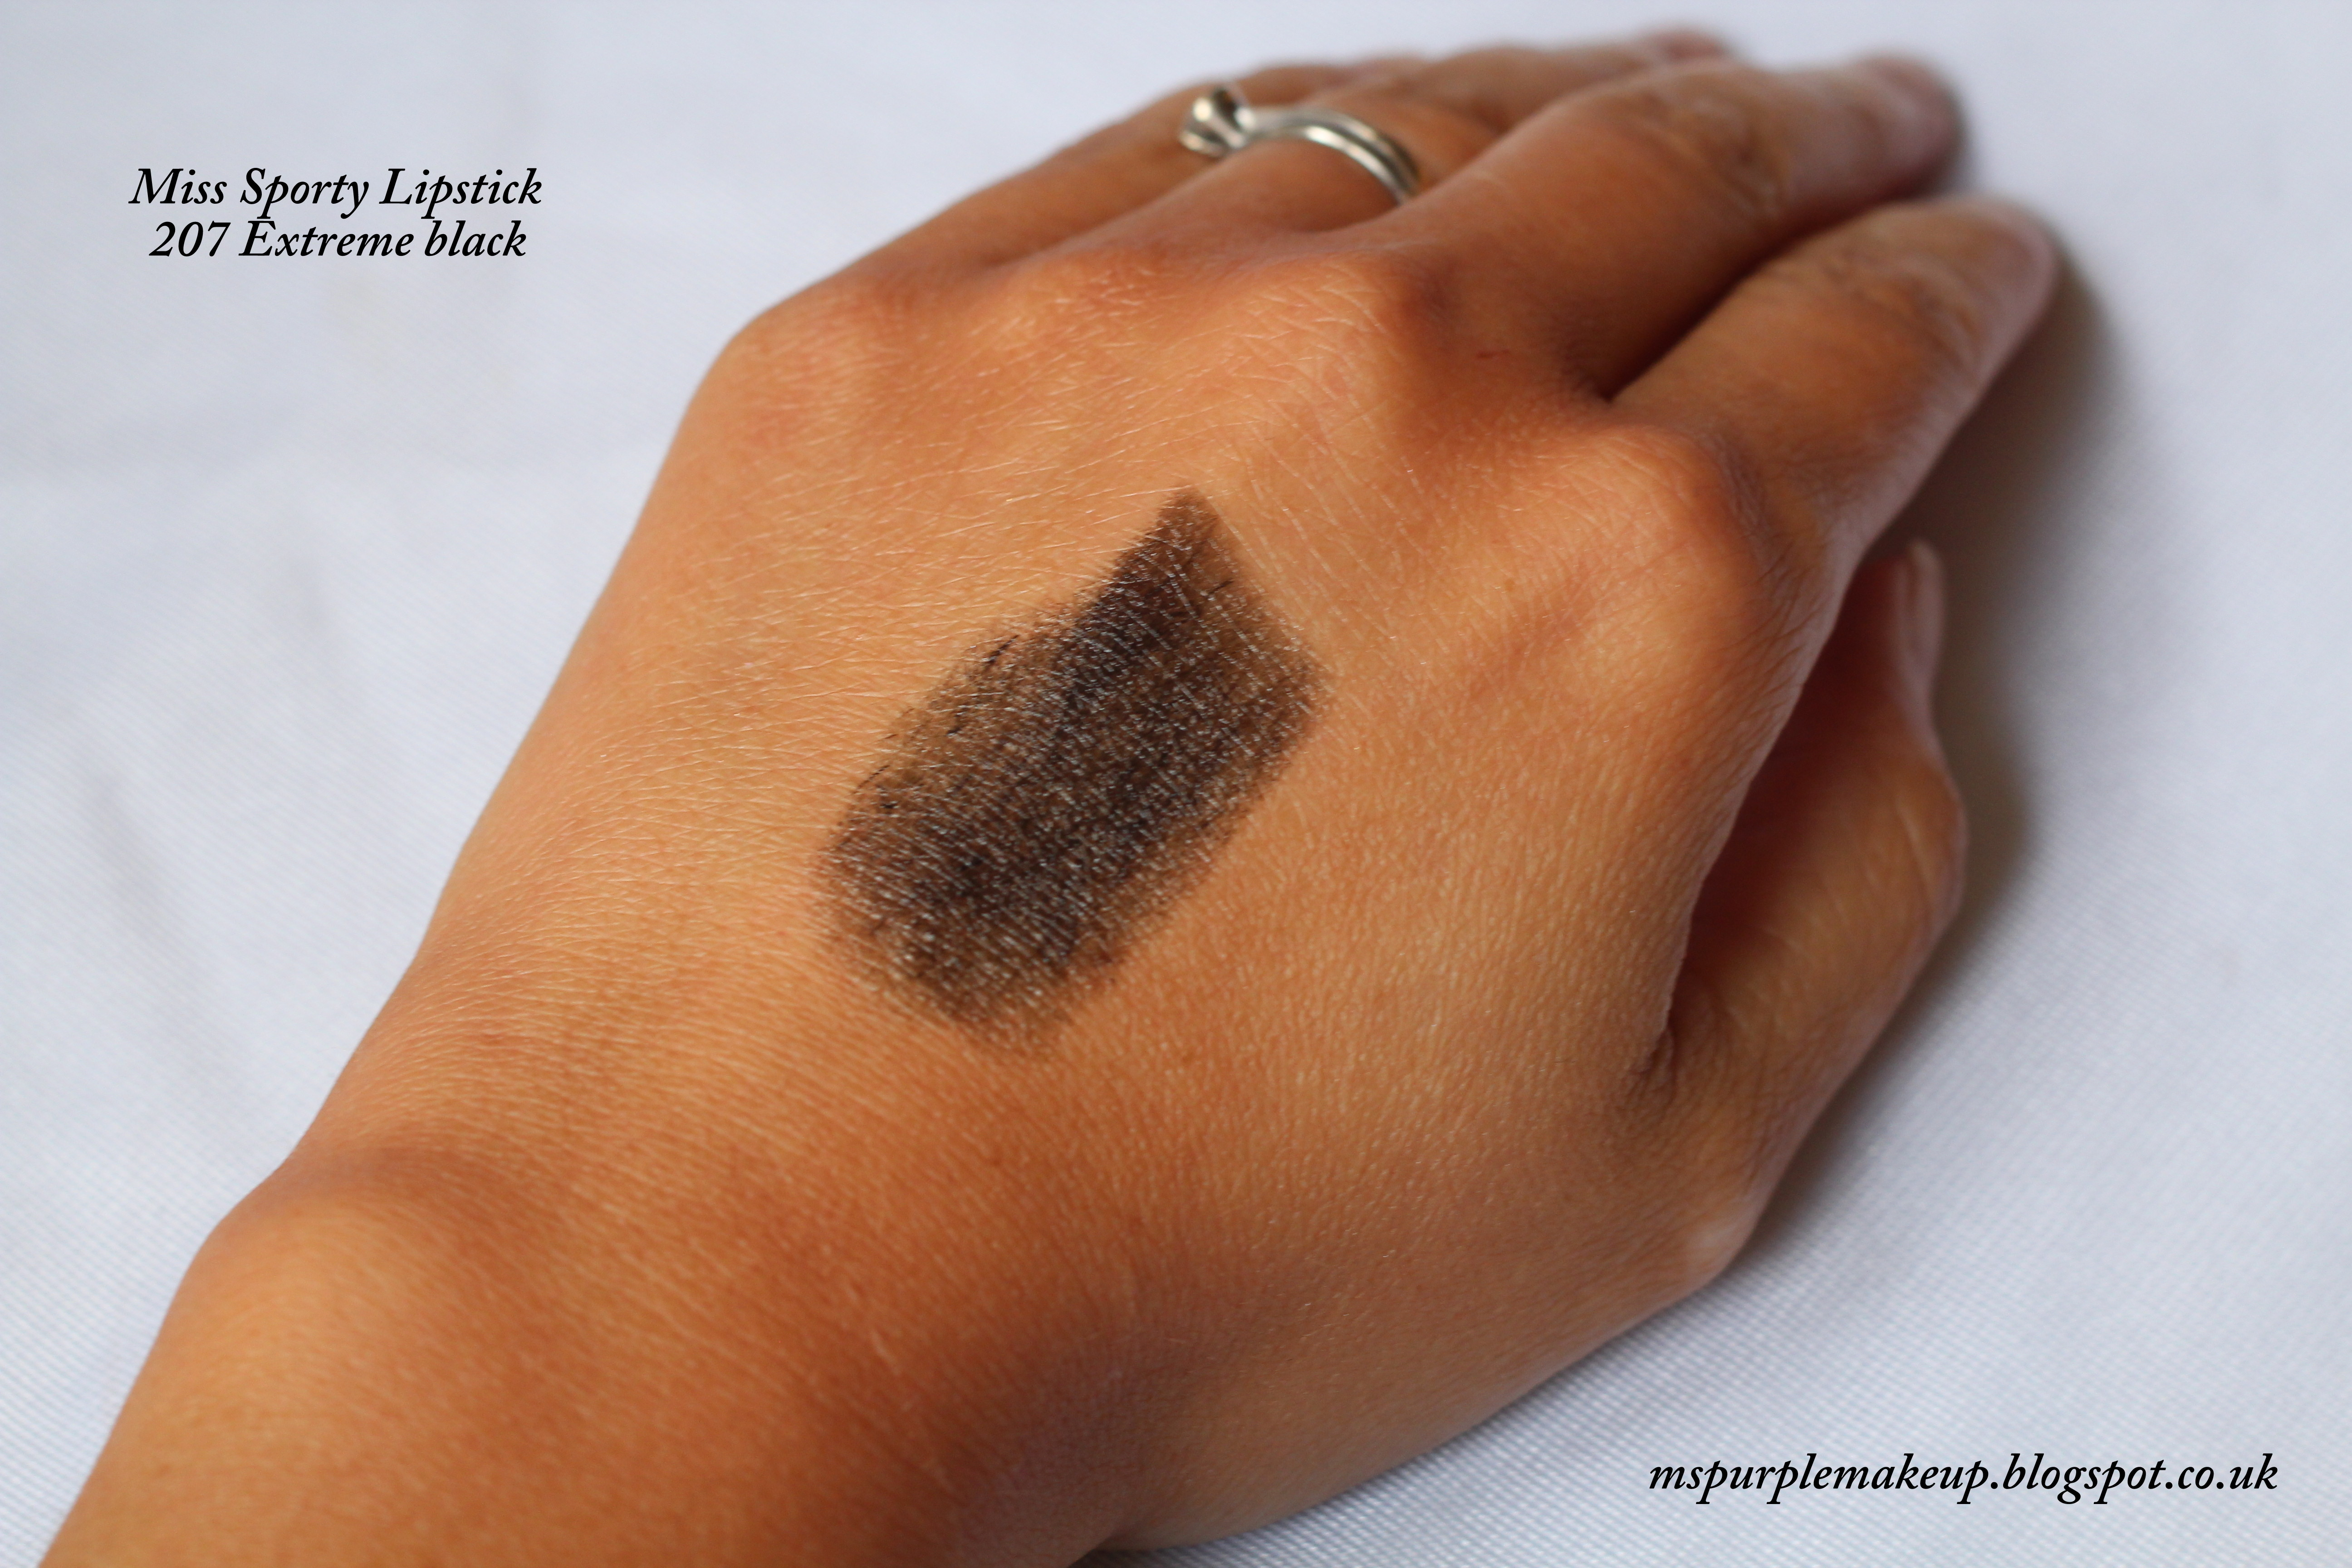 Miss Sporty Lipstick 207 Extreme Black - Swatch